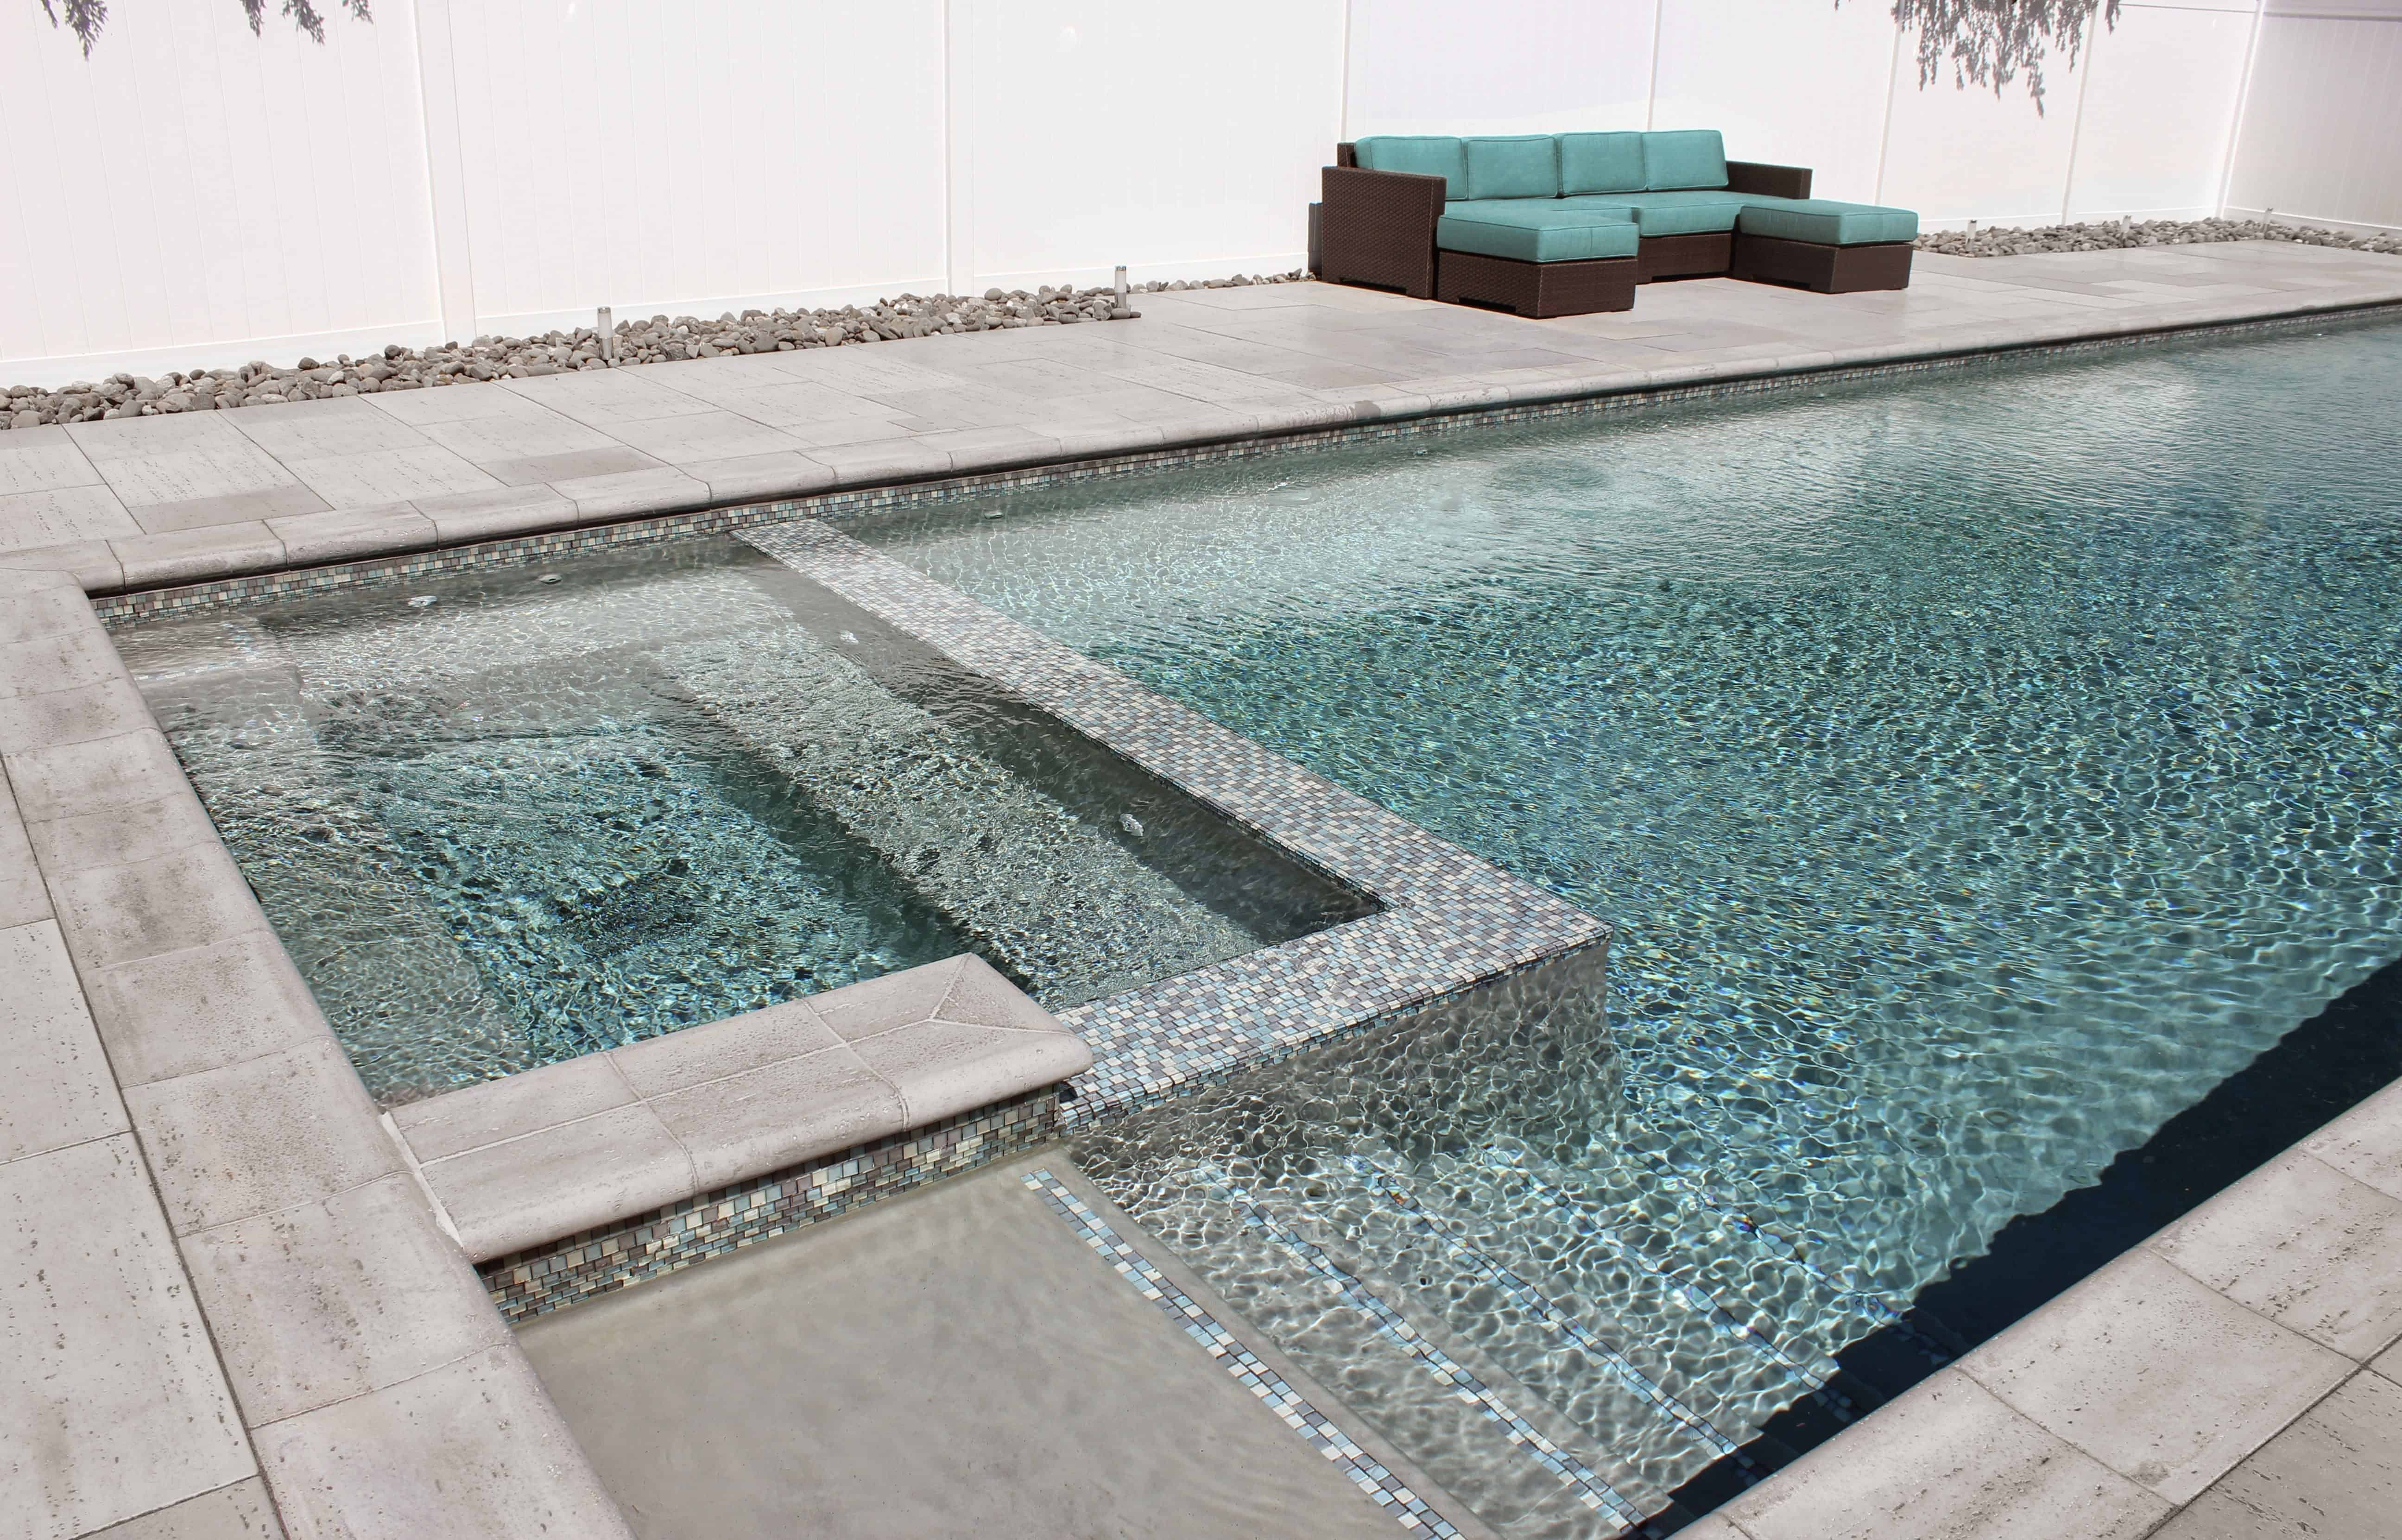 45' x 15' Gunite Pool with Glass Mosaic Tile and Spa - Syosset, Long Island NY